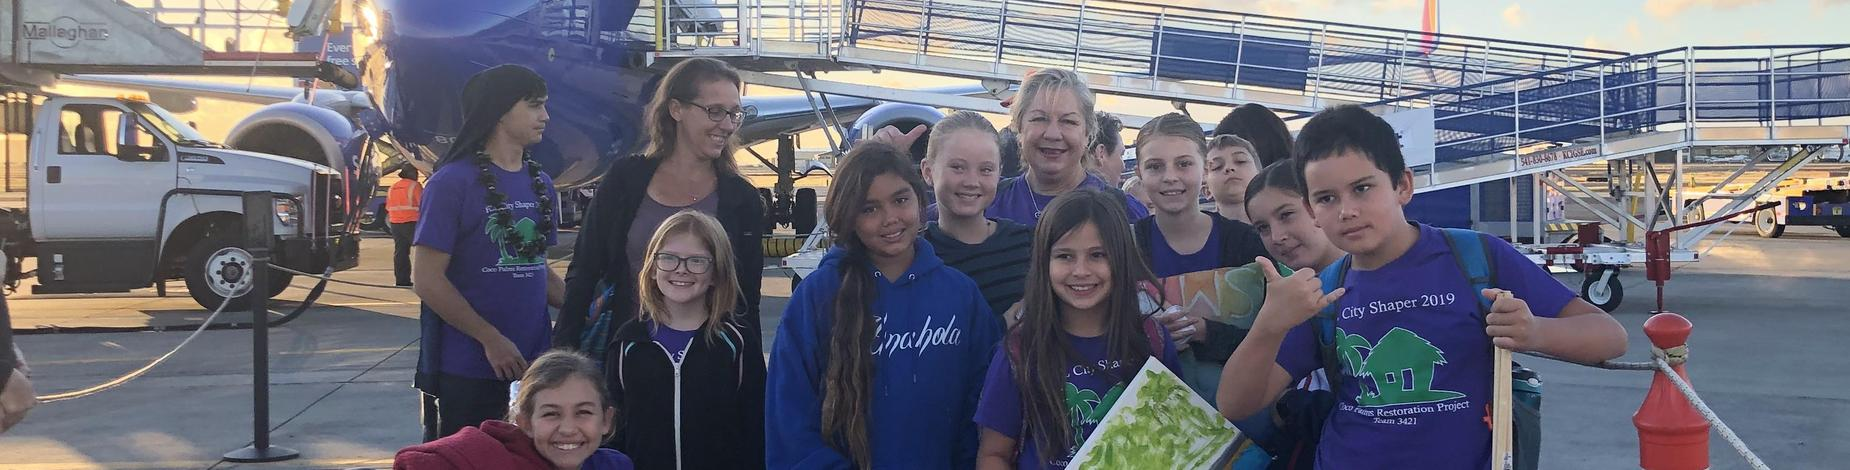 Just off the plane! South West Airlines first flight of the day to Honolulu!